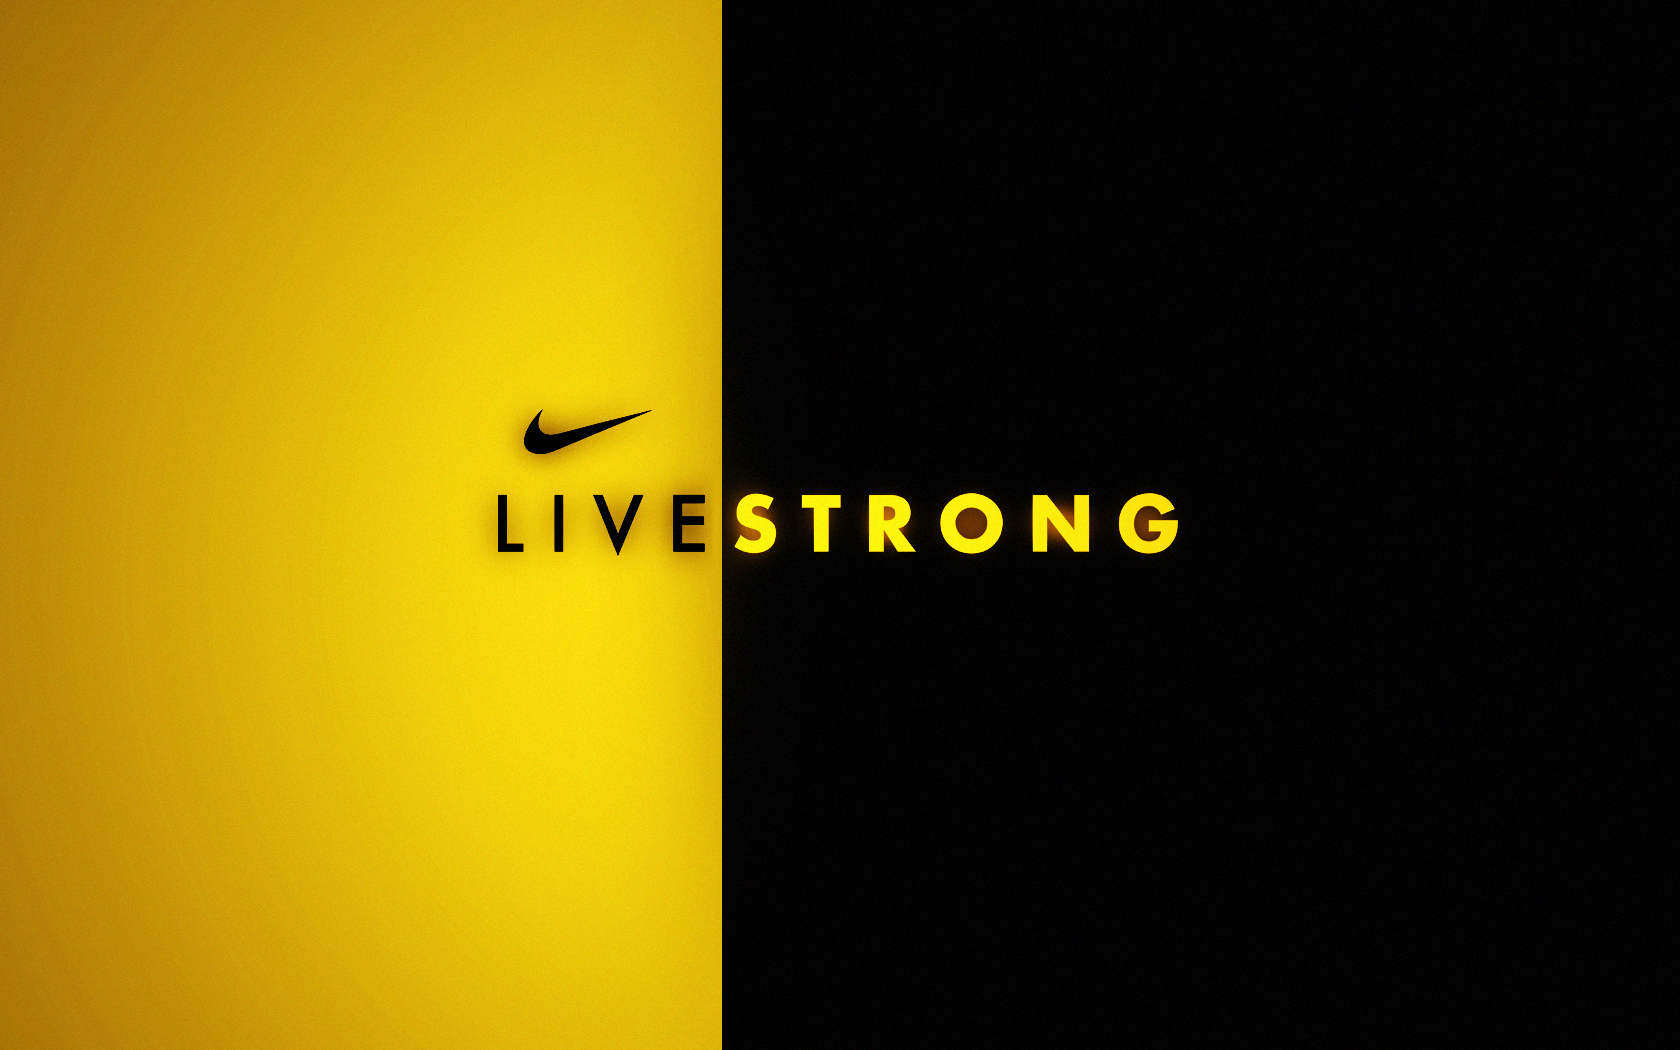 LiveSTRONG Photo by JasmineKyla | Photobucket